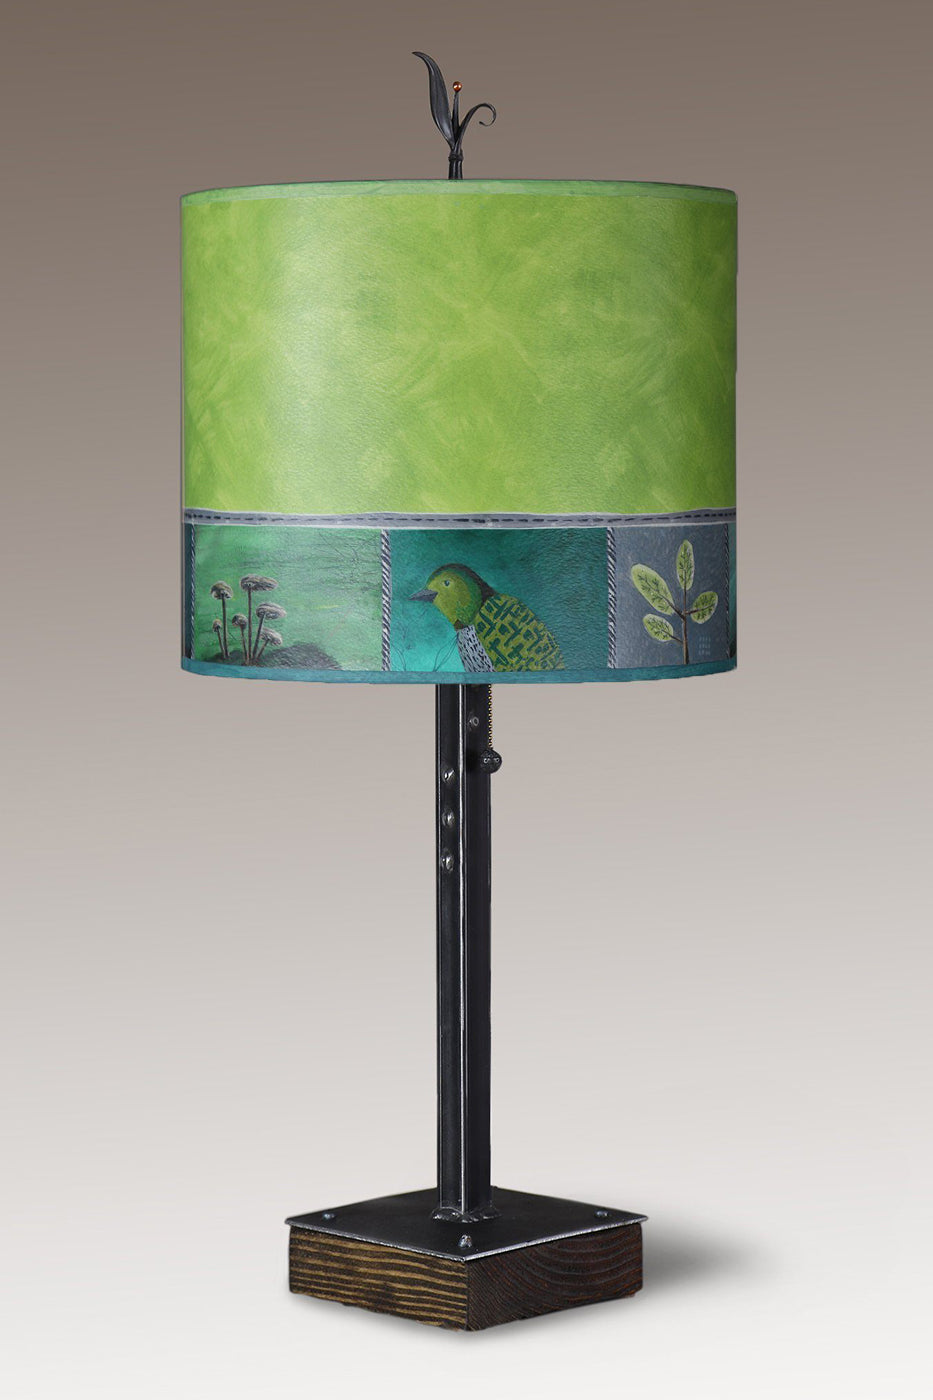 Steel Table Lamp on Wood with Large Oval Shade in Woodland Trails in Leaf